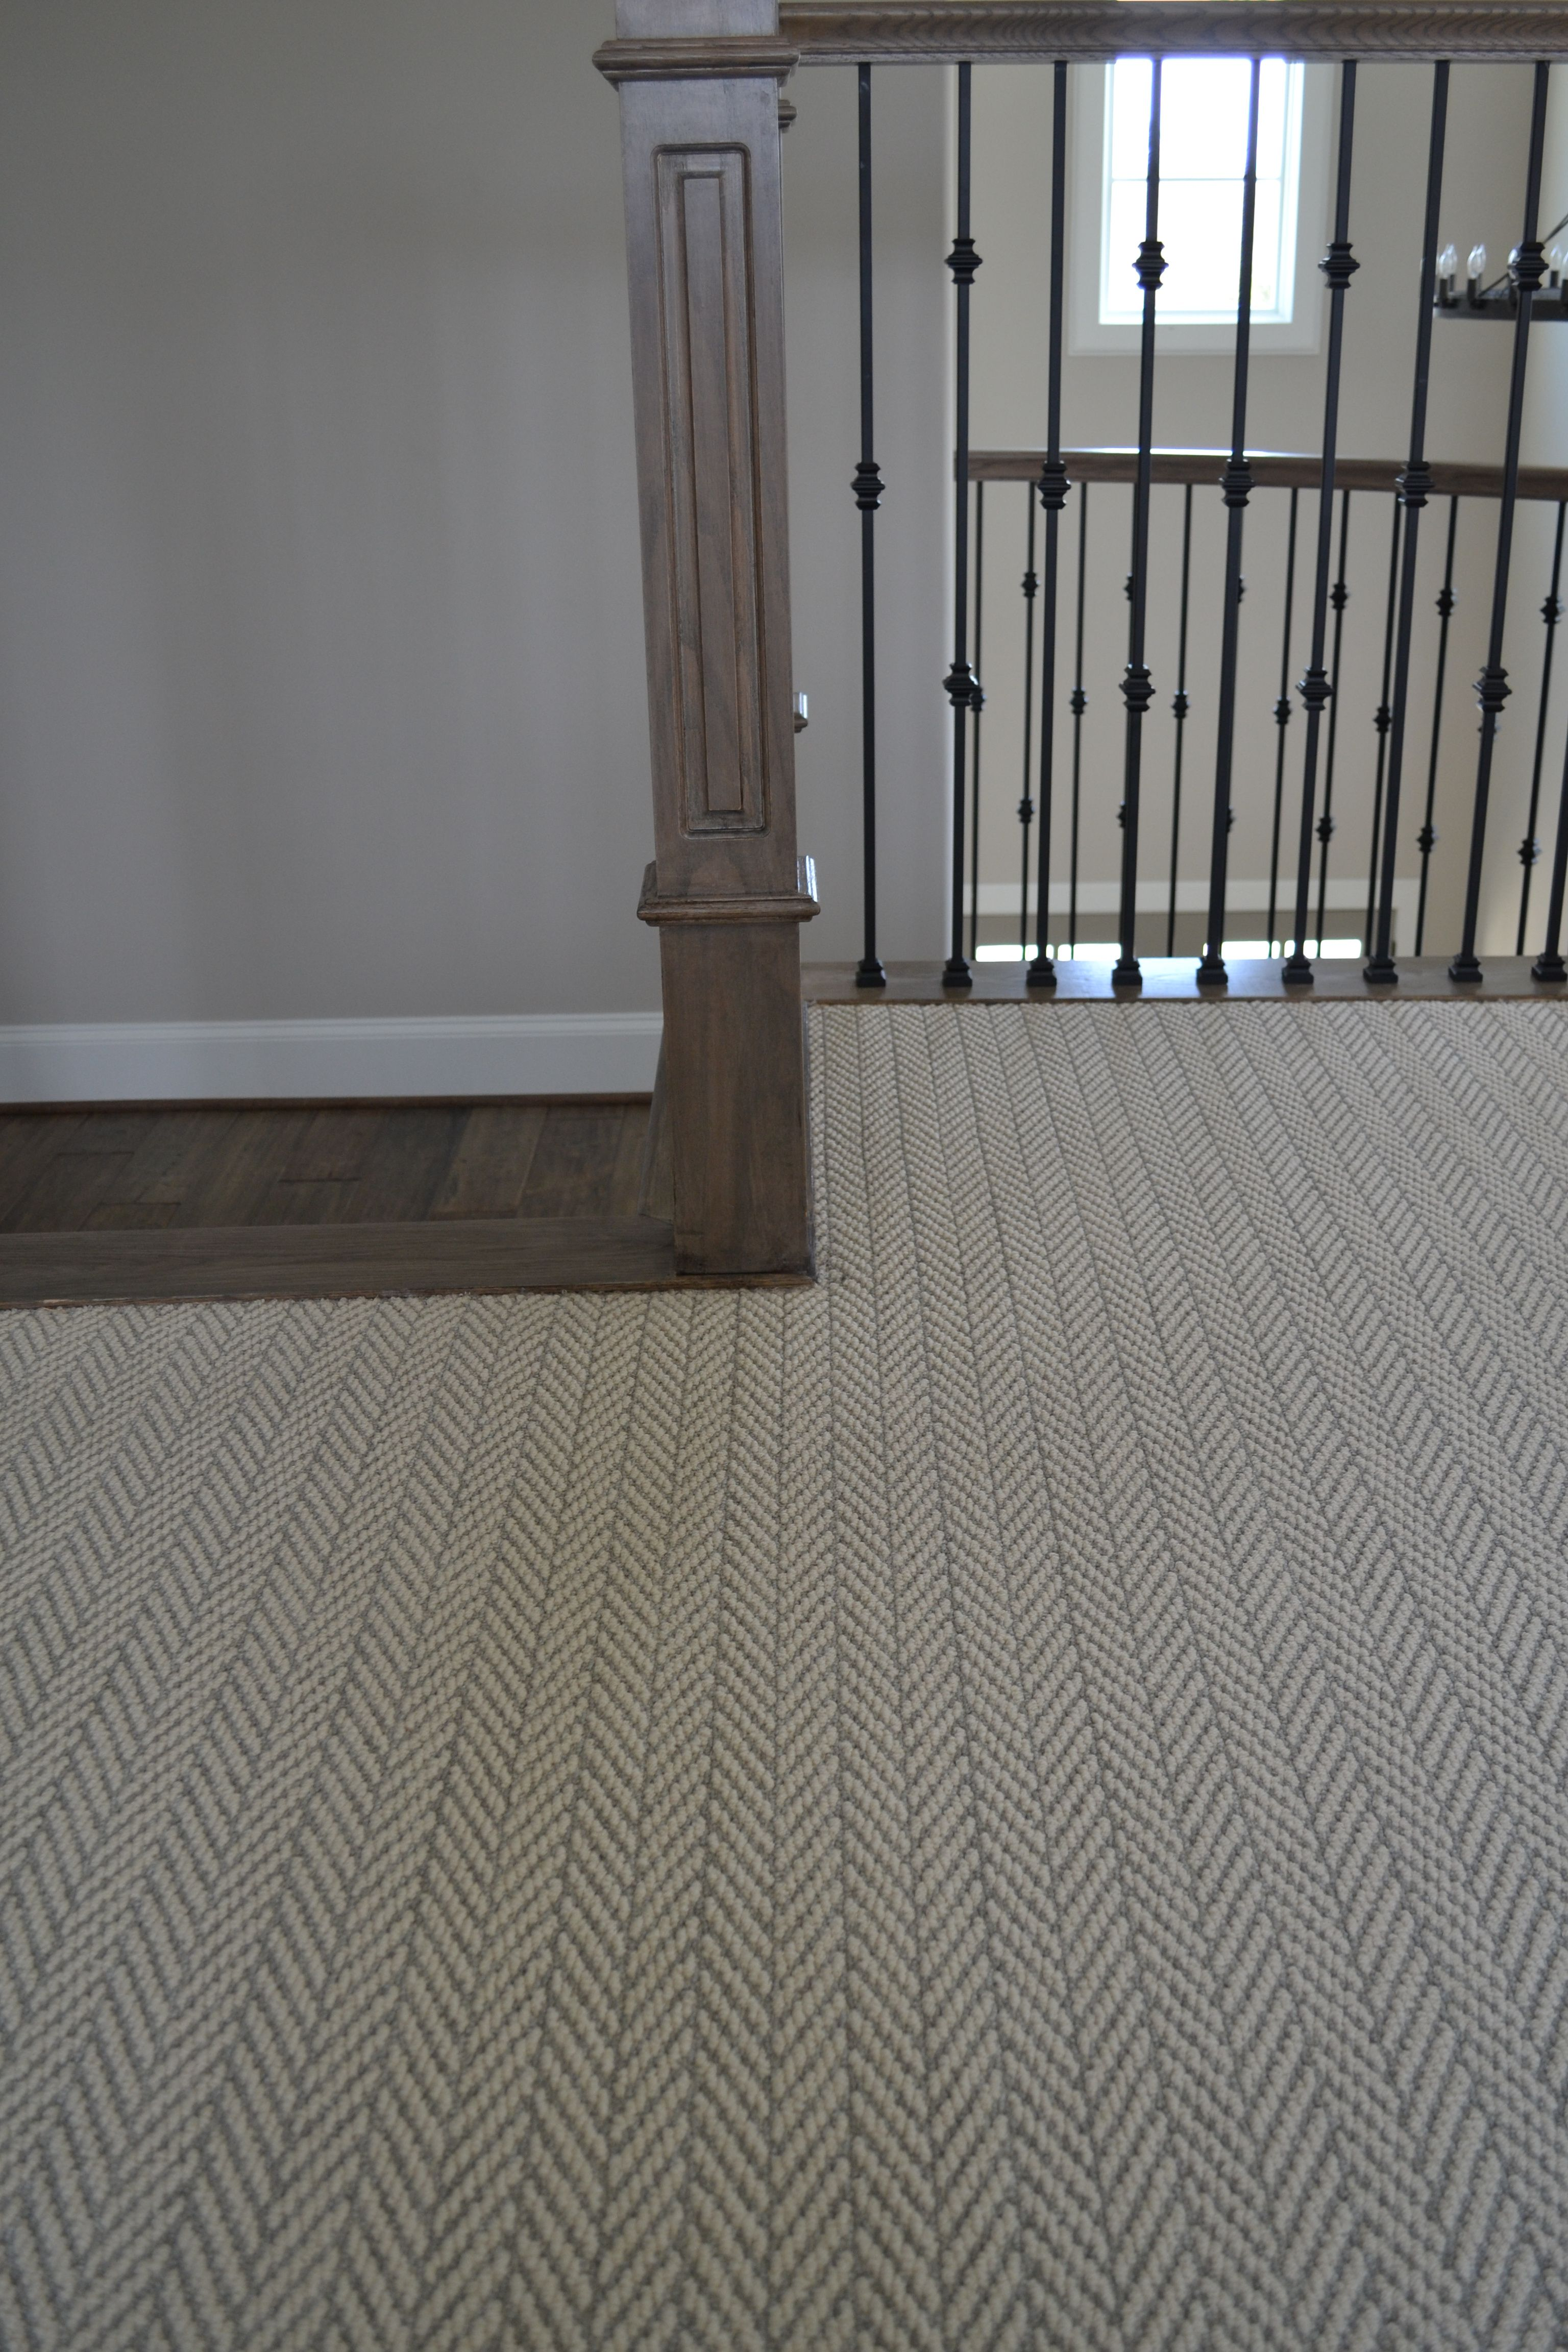 ONLY NATURAL Silver Spruce Tuftex Carpets of California